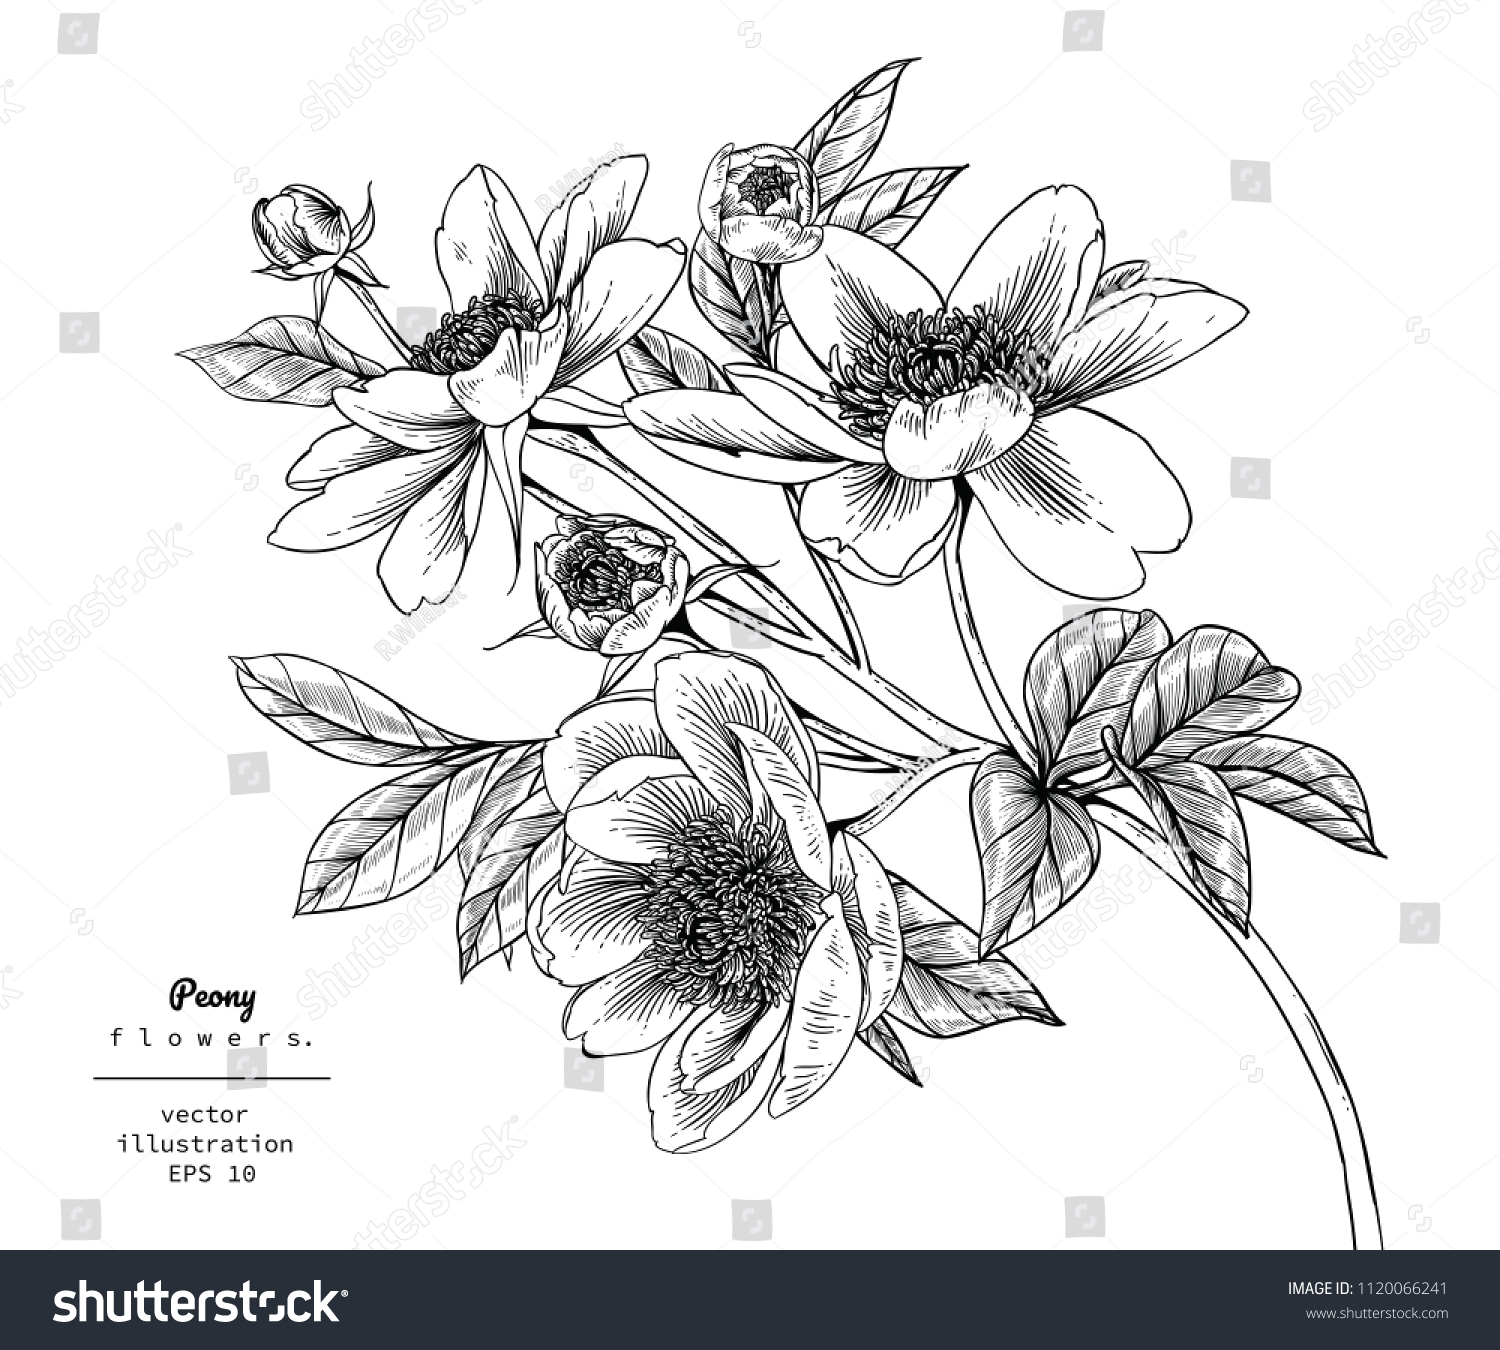 Sketch Floral Botany Collection Peony Flower Stock Vector Royalty